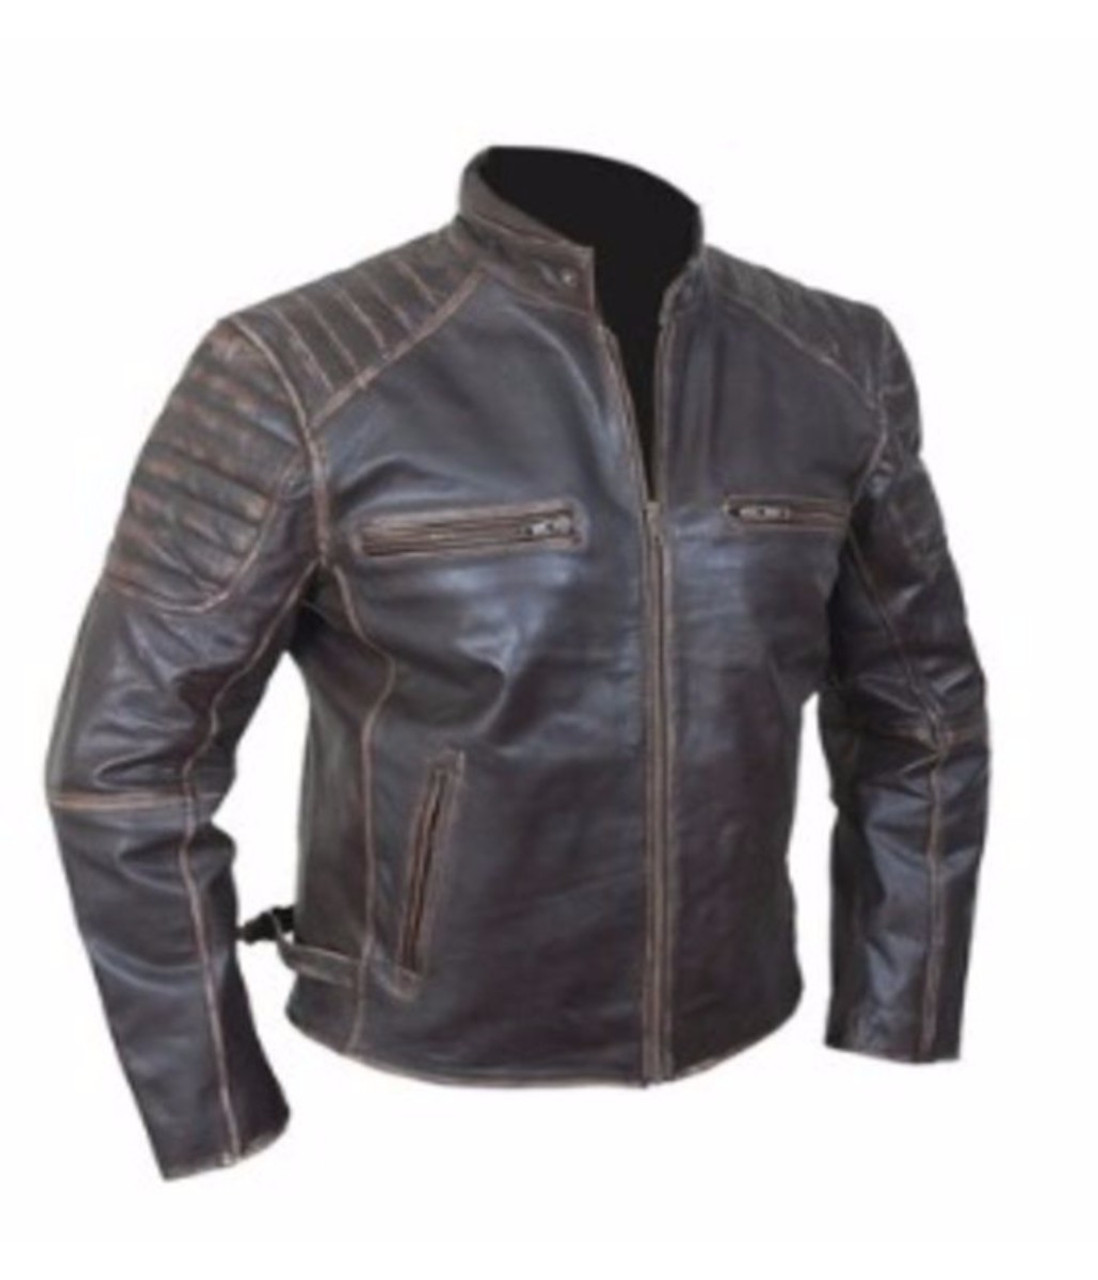 Where to get a leather jacket